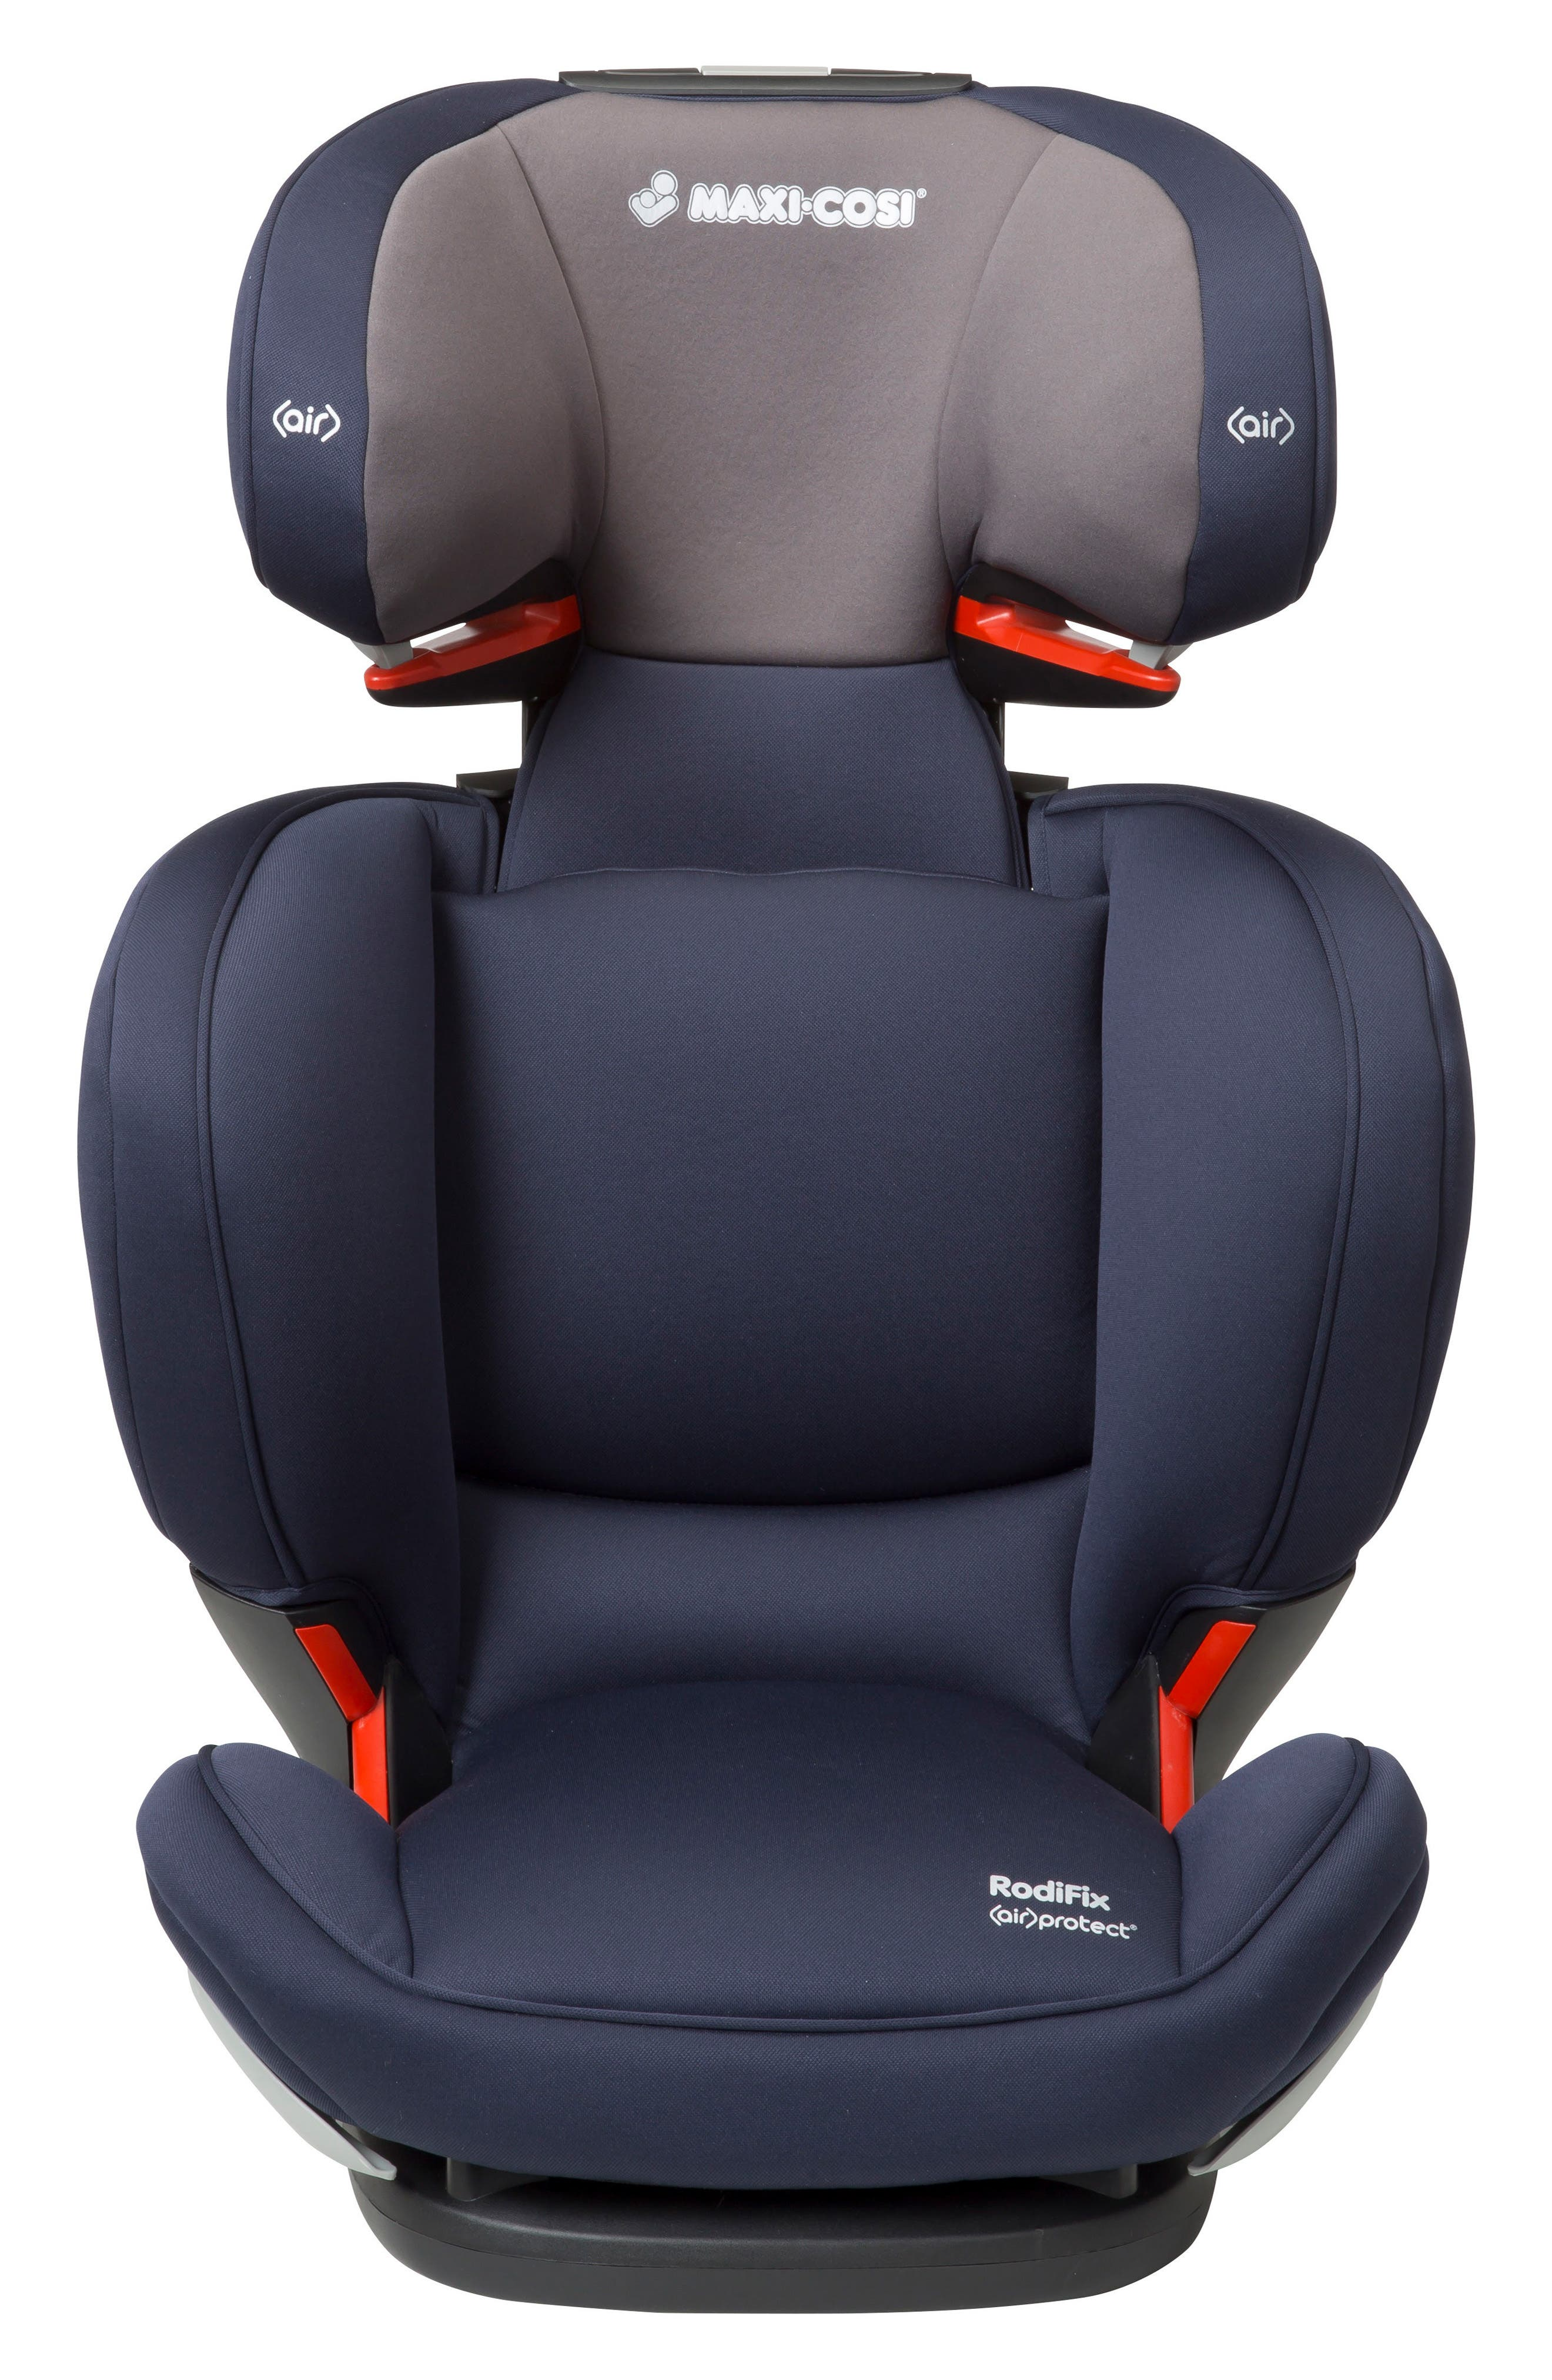 RodiFix Booster Car Seat,                         Main,                         color, Navy